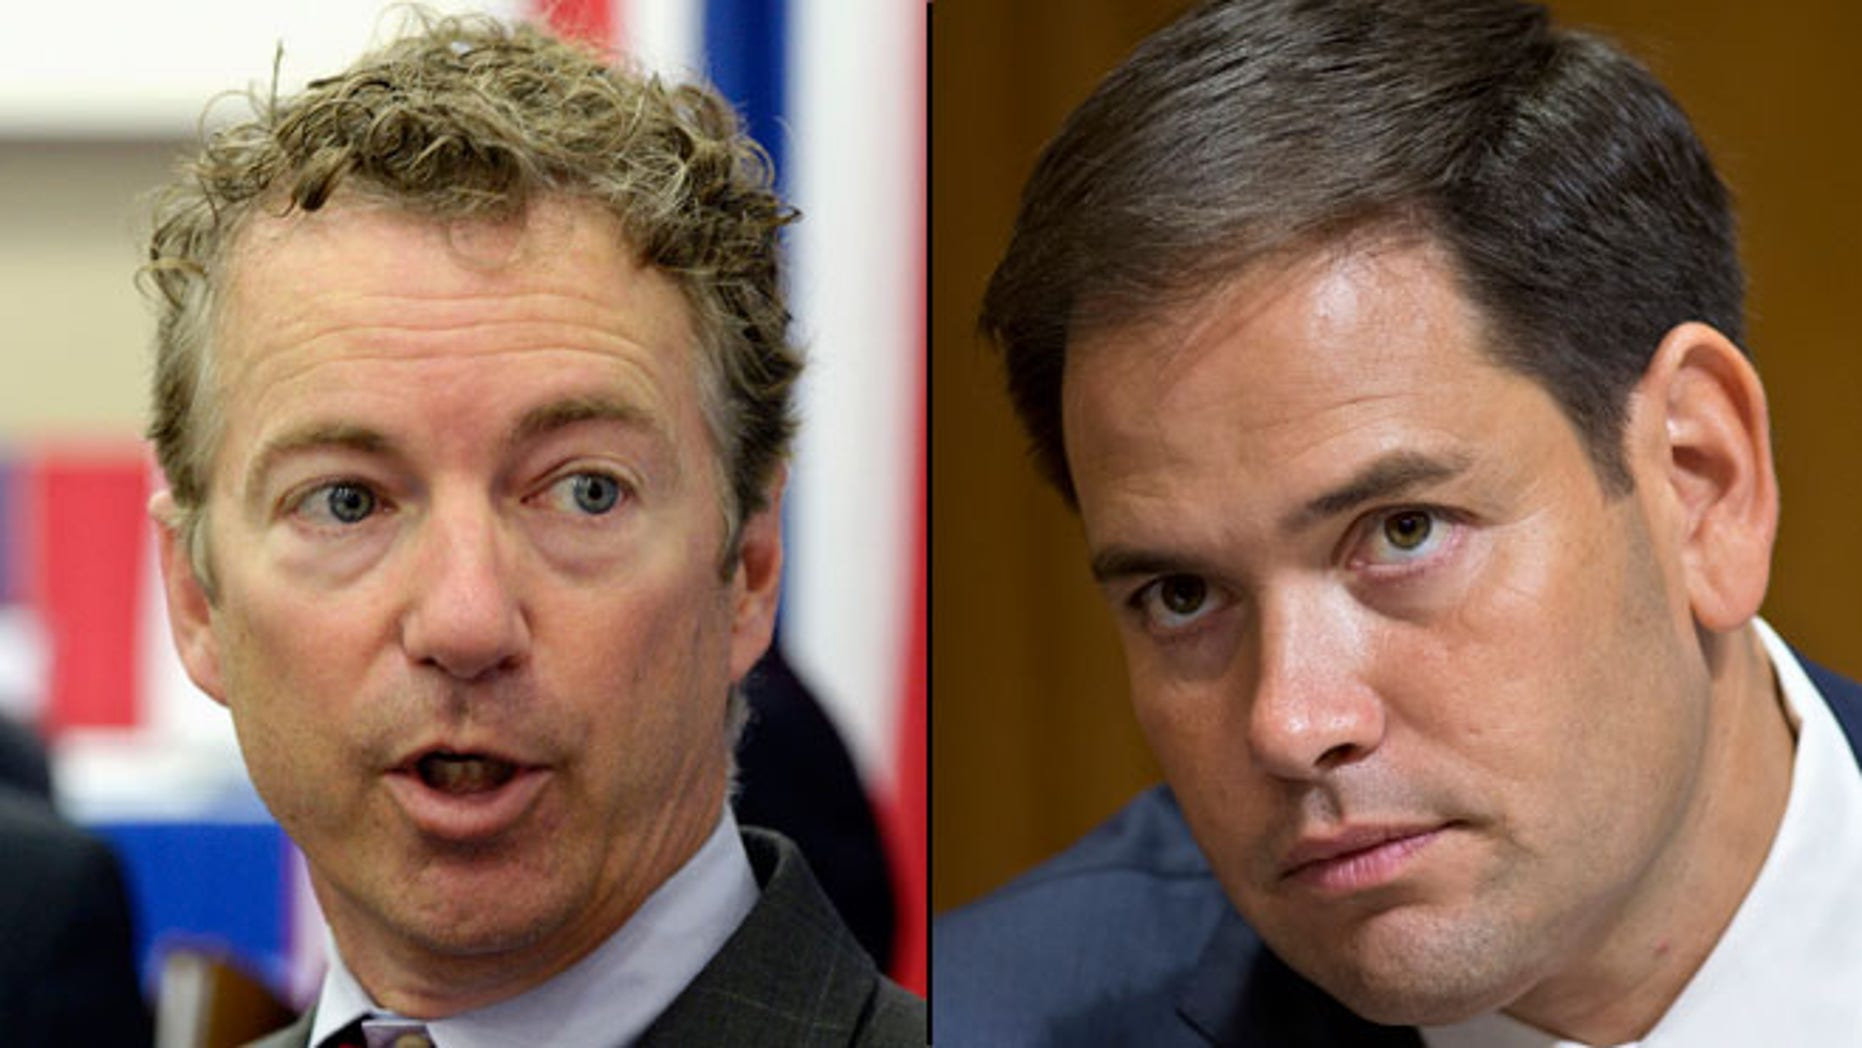 Shown here are Sens. Rand Paul, R-Ky., left, and Marco Rubio, R-Fla.